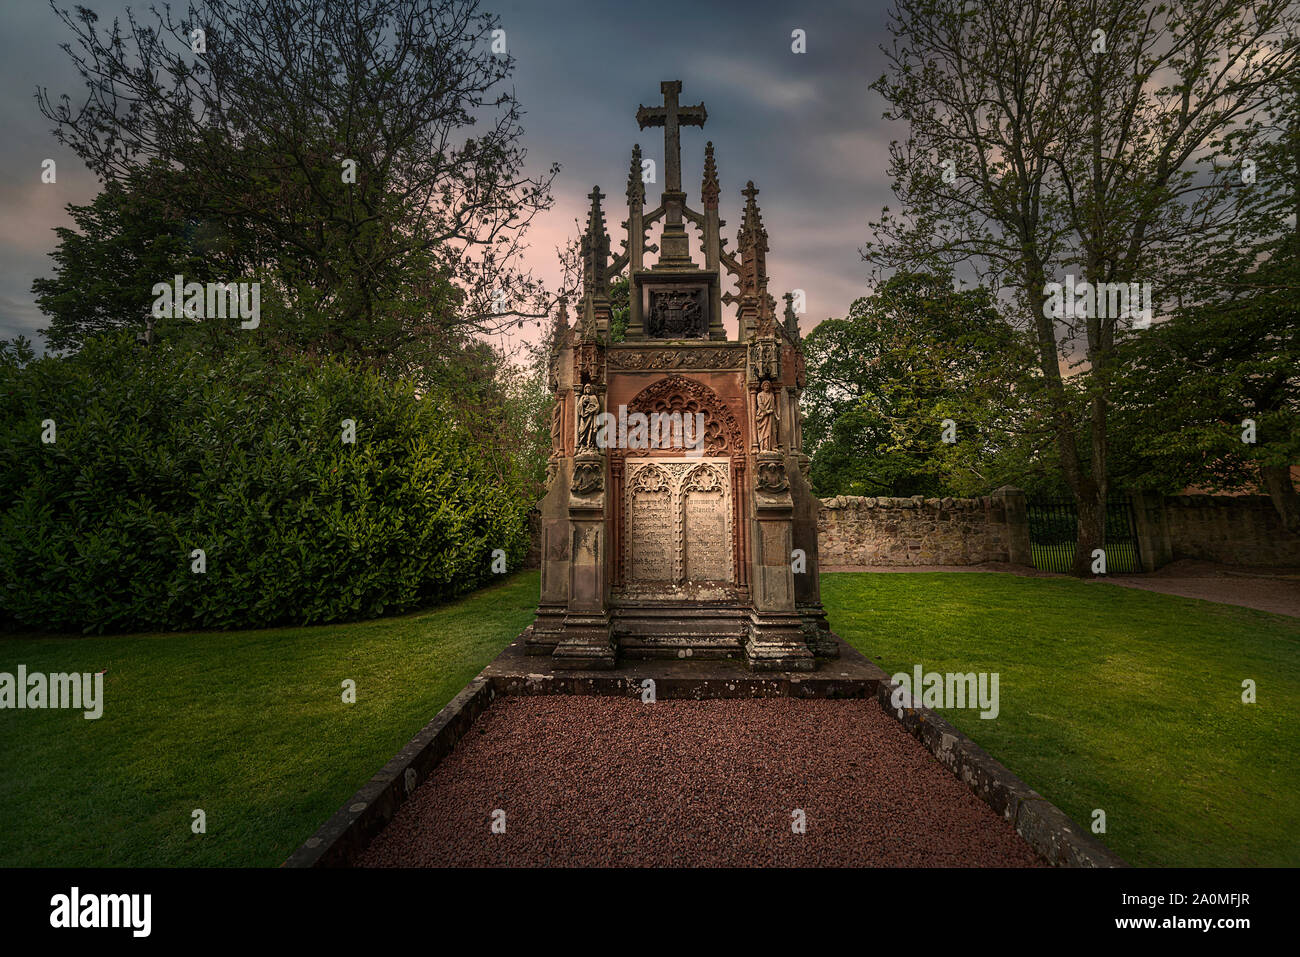 Grave at Rosslyn Chapel.  Rosslyn Chapel is a gothic church located at the village of Roslin, Midlothian, Scotland Stock Photo